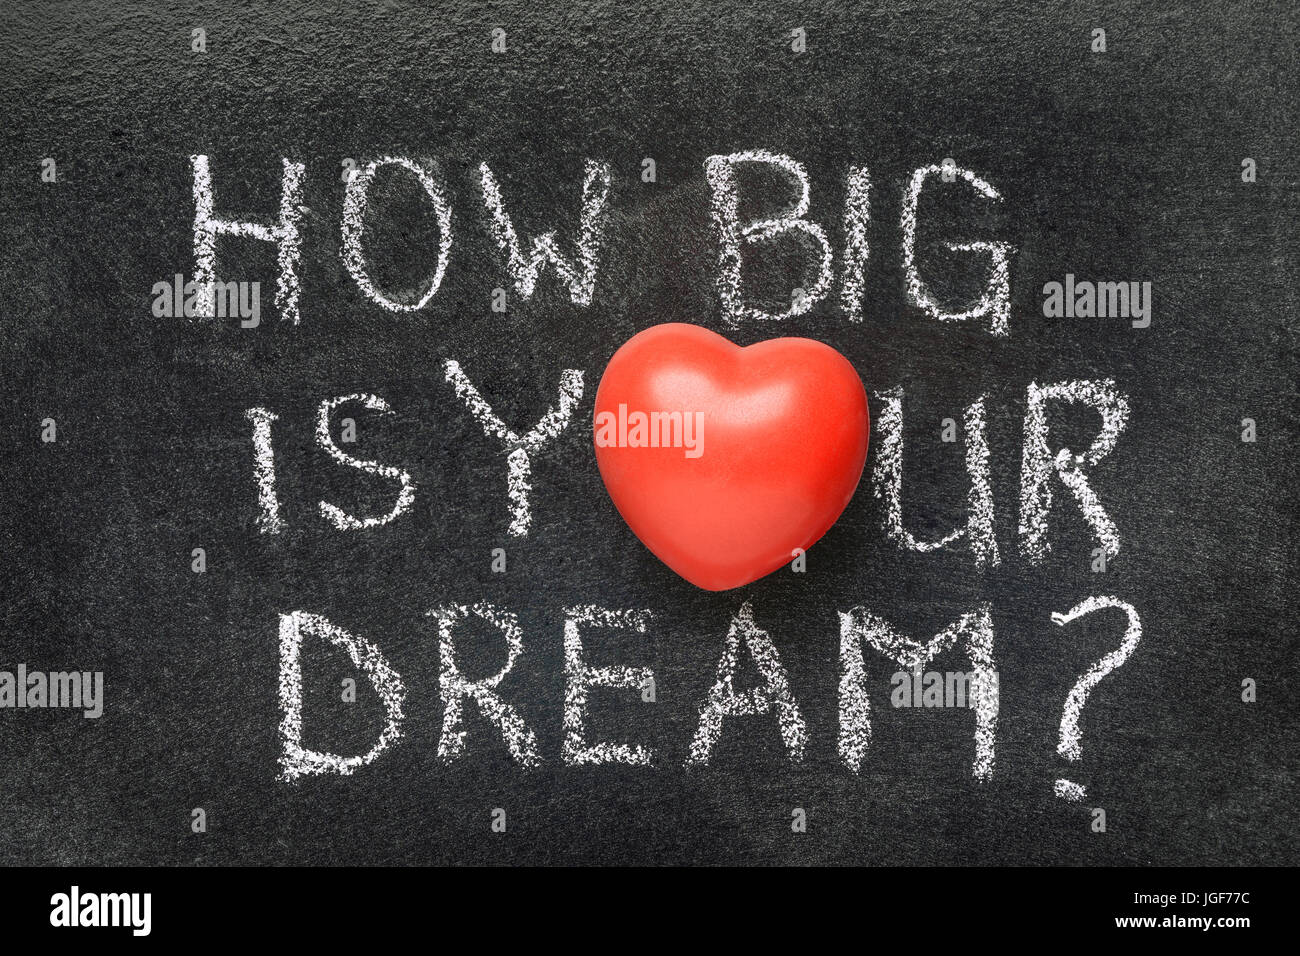 How big is your dream question handwritten on blackboard with how big is your dream question handwritten on blackboard with heart symbol instead of o buycottarizona Image collections